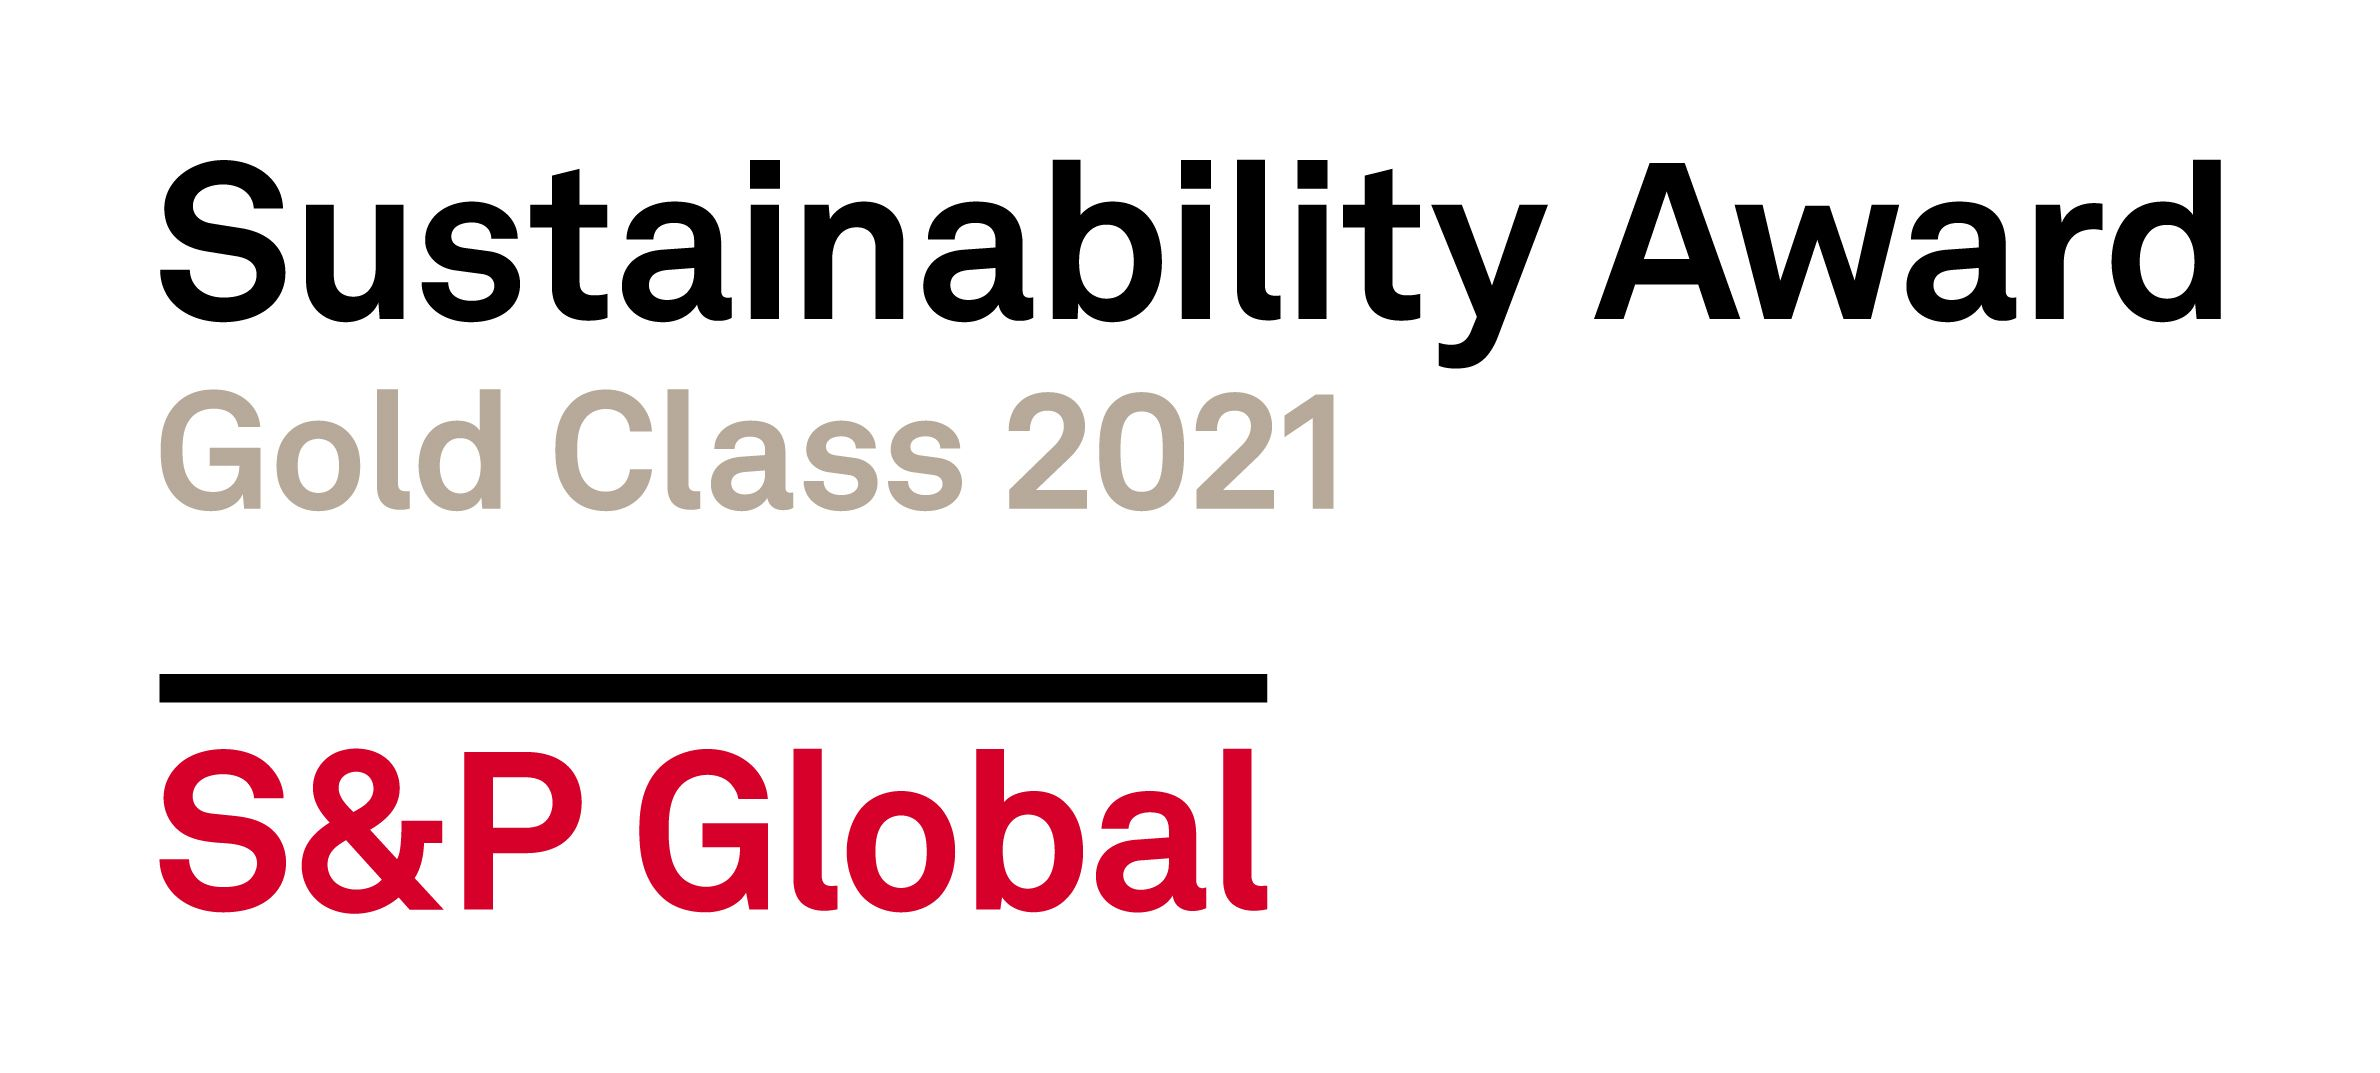 Gold Class Distinction from S&P Global for Sustainability